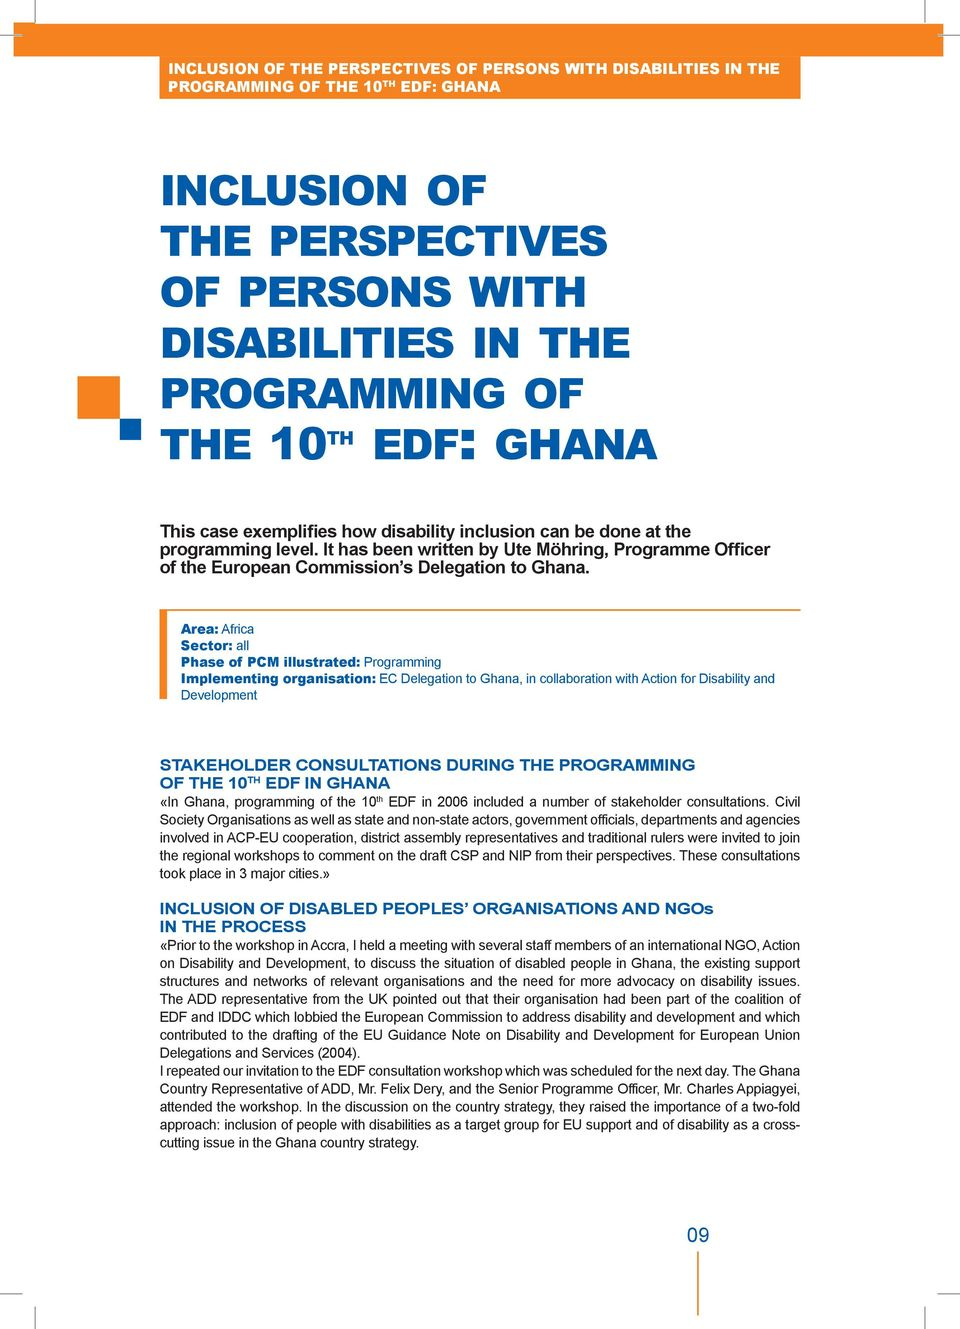 Area: Africa Sector: all Phase of PCM illustrated: Programming Implementing organisation: EC Delegation to Ghana, in collaboration with Action for Disability and Development Stakeholder consultations